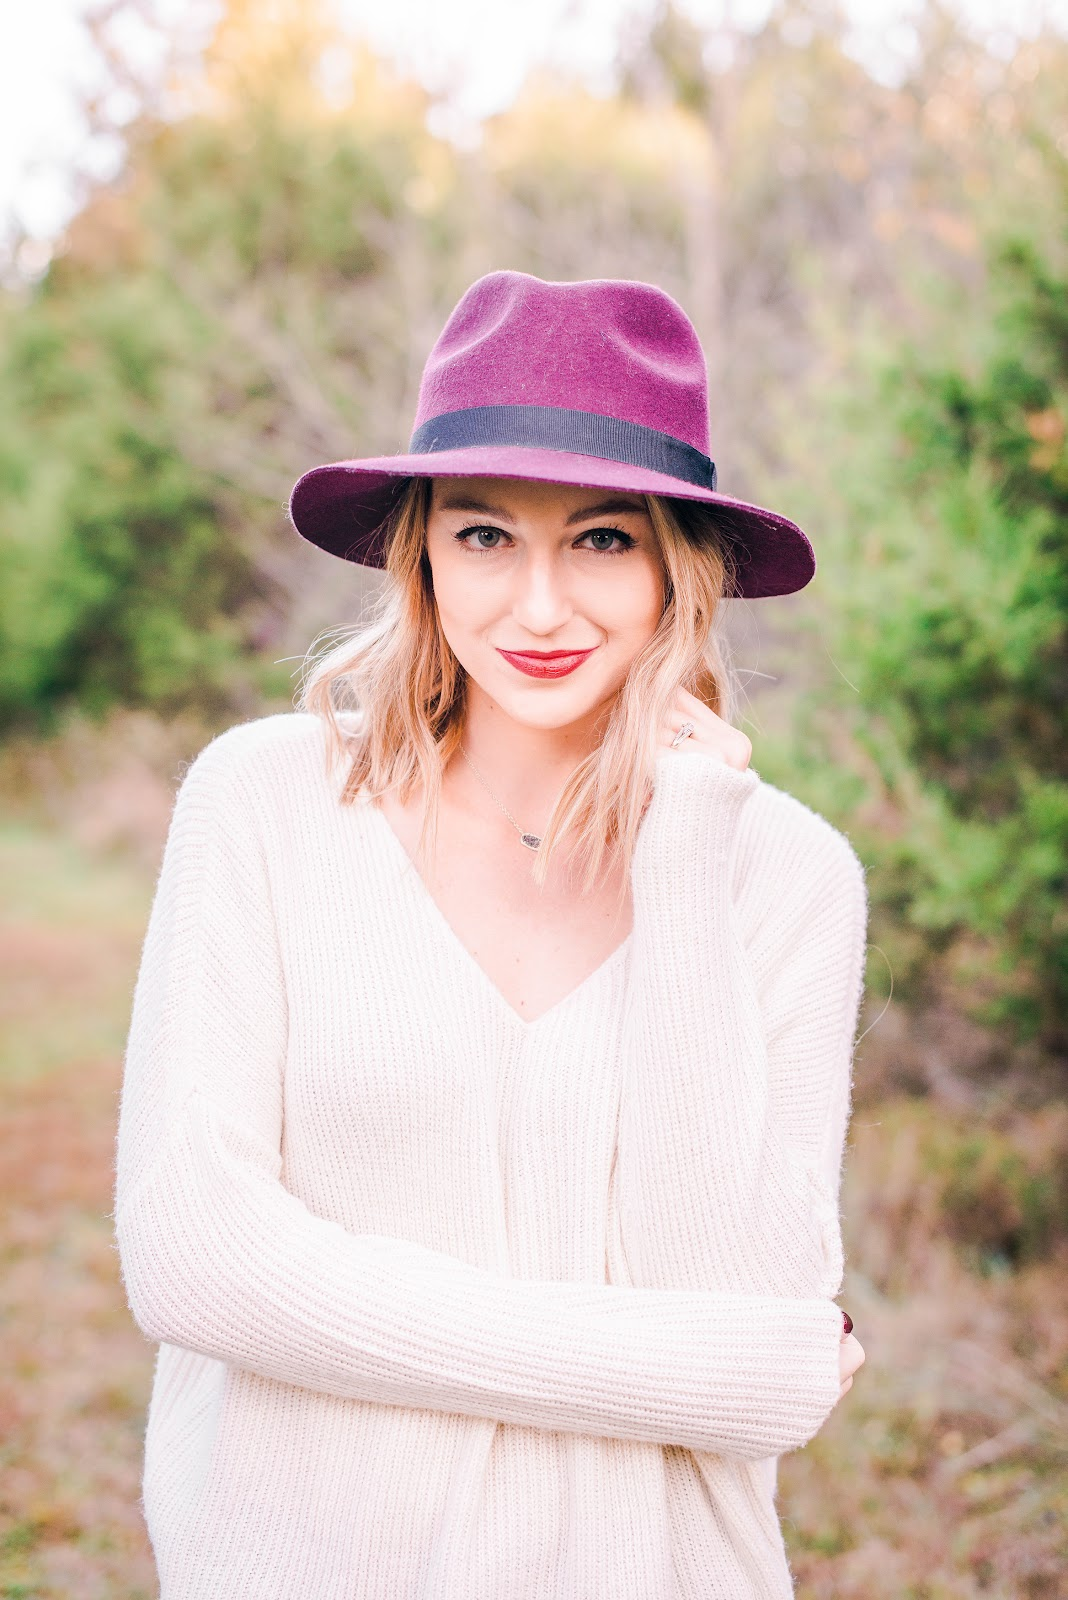 Burgundy hat + cream sweater